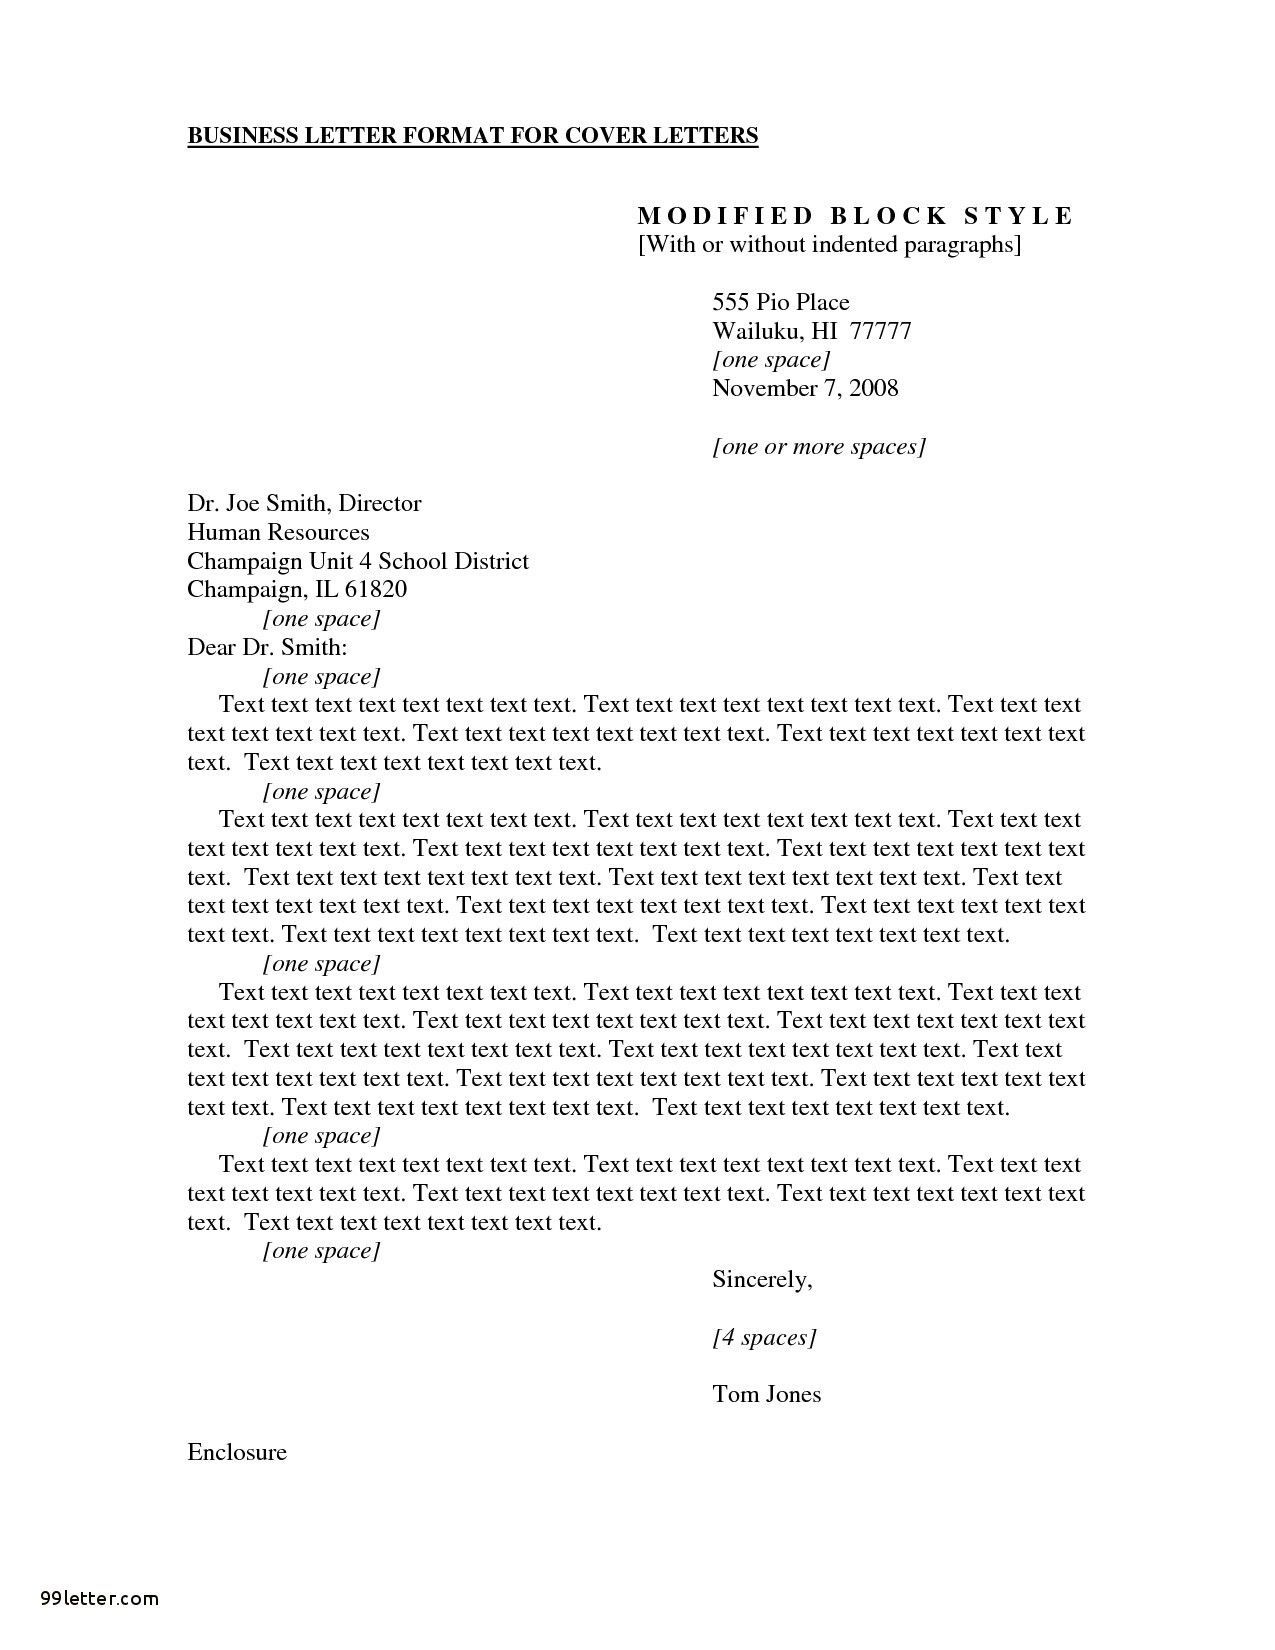 Cover Letter Template Apa Style Cover Letter Format Business Letter Format Cover Letter Example